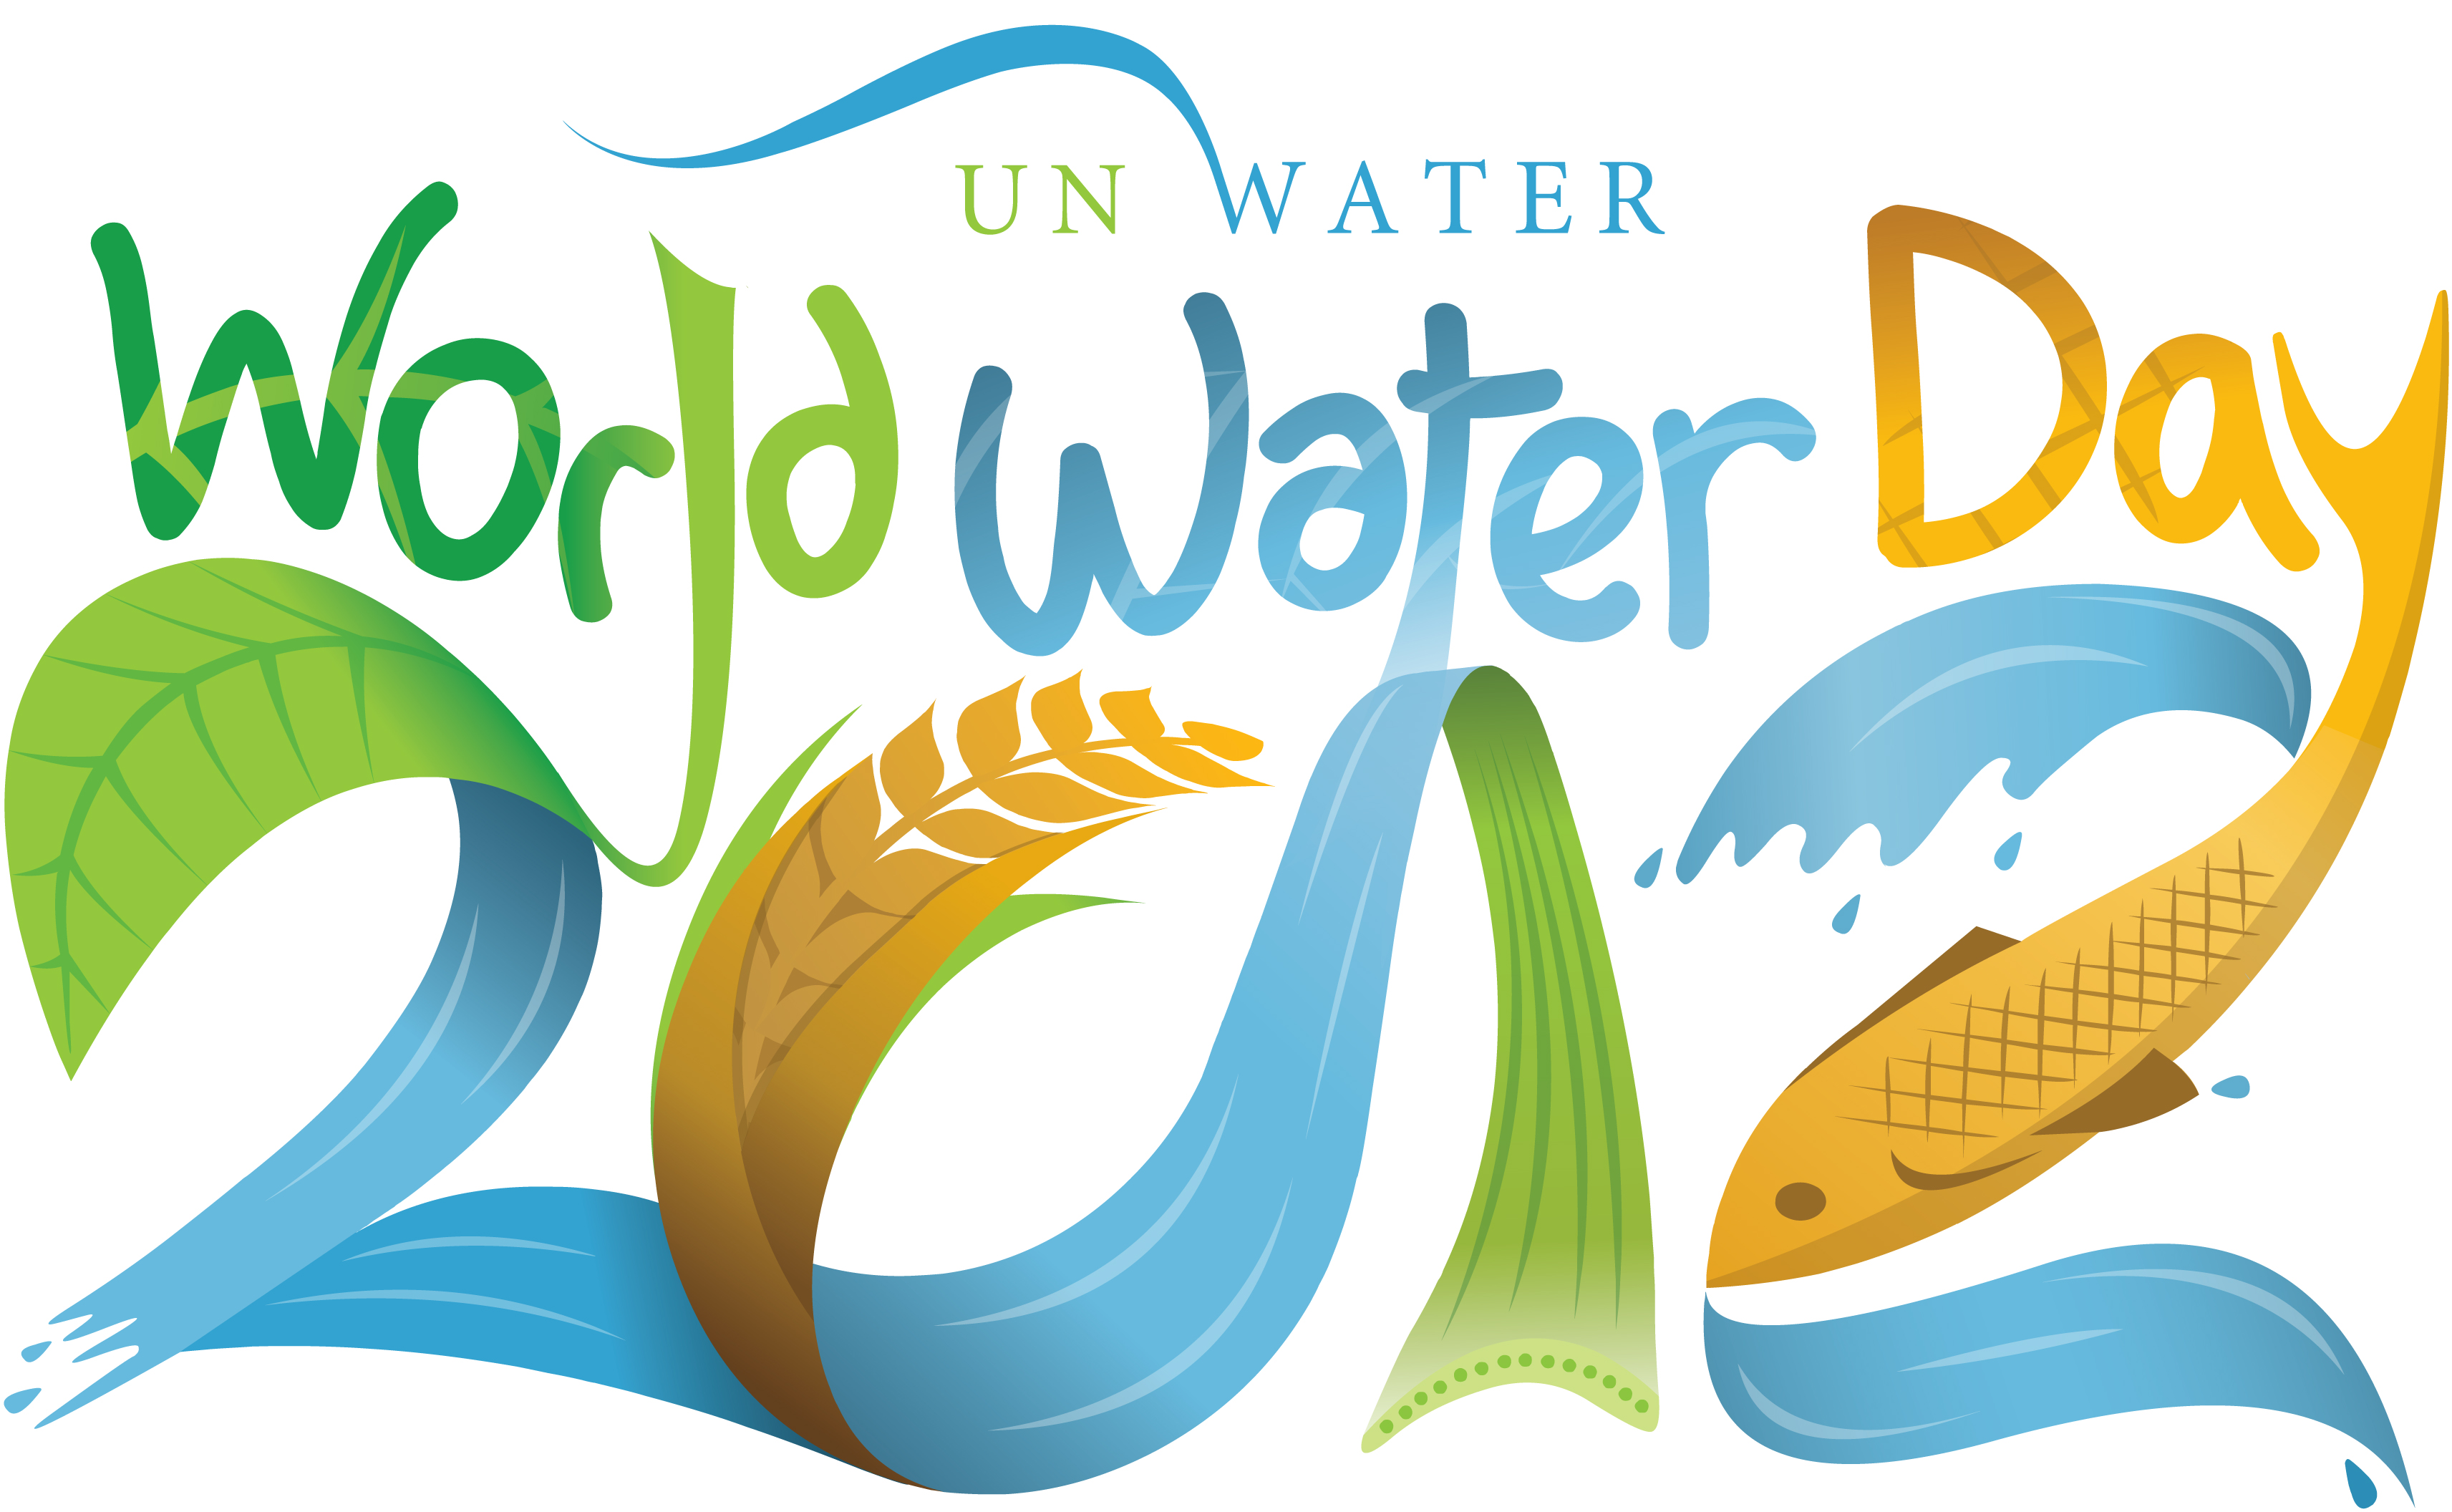 World Water Day: Water is essential for life